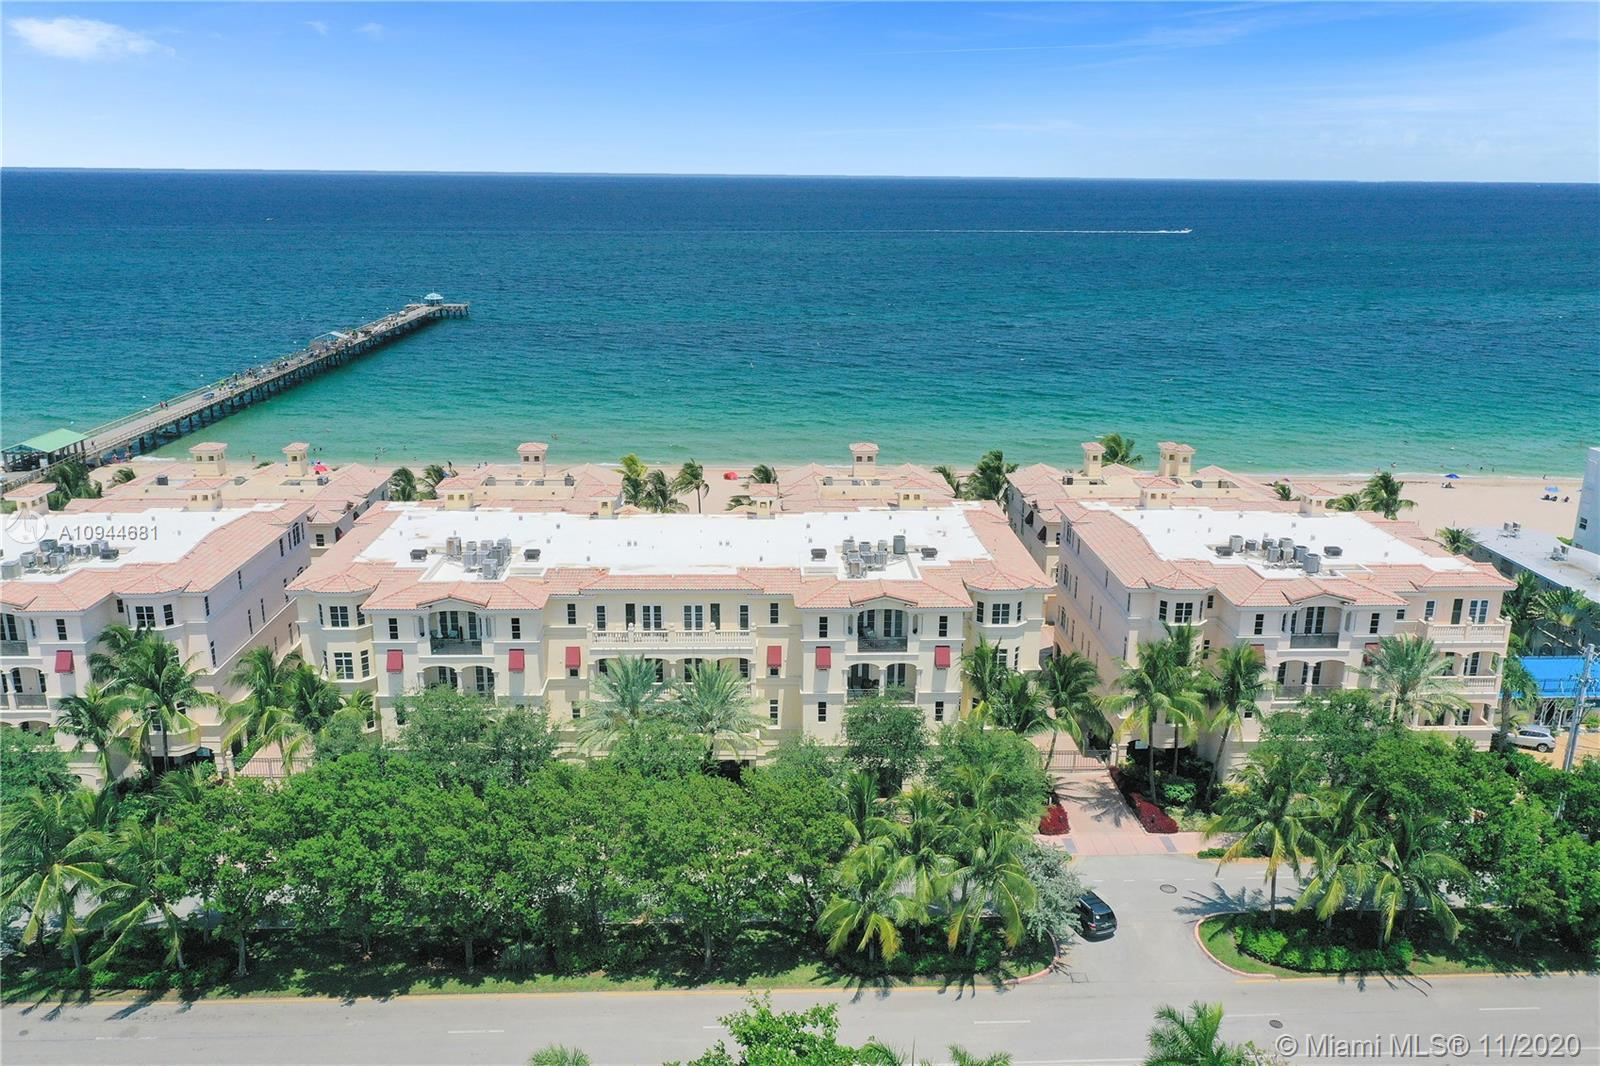 Magnificent 2-Story Townhome with ocean views from the moment you arrive. Oriana By The Sea is locat